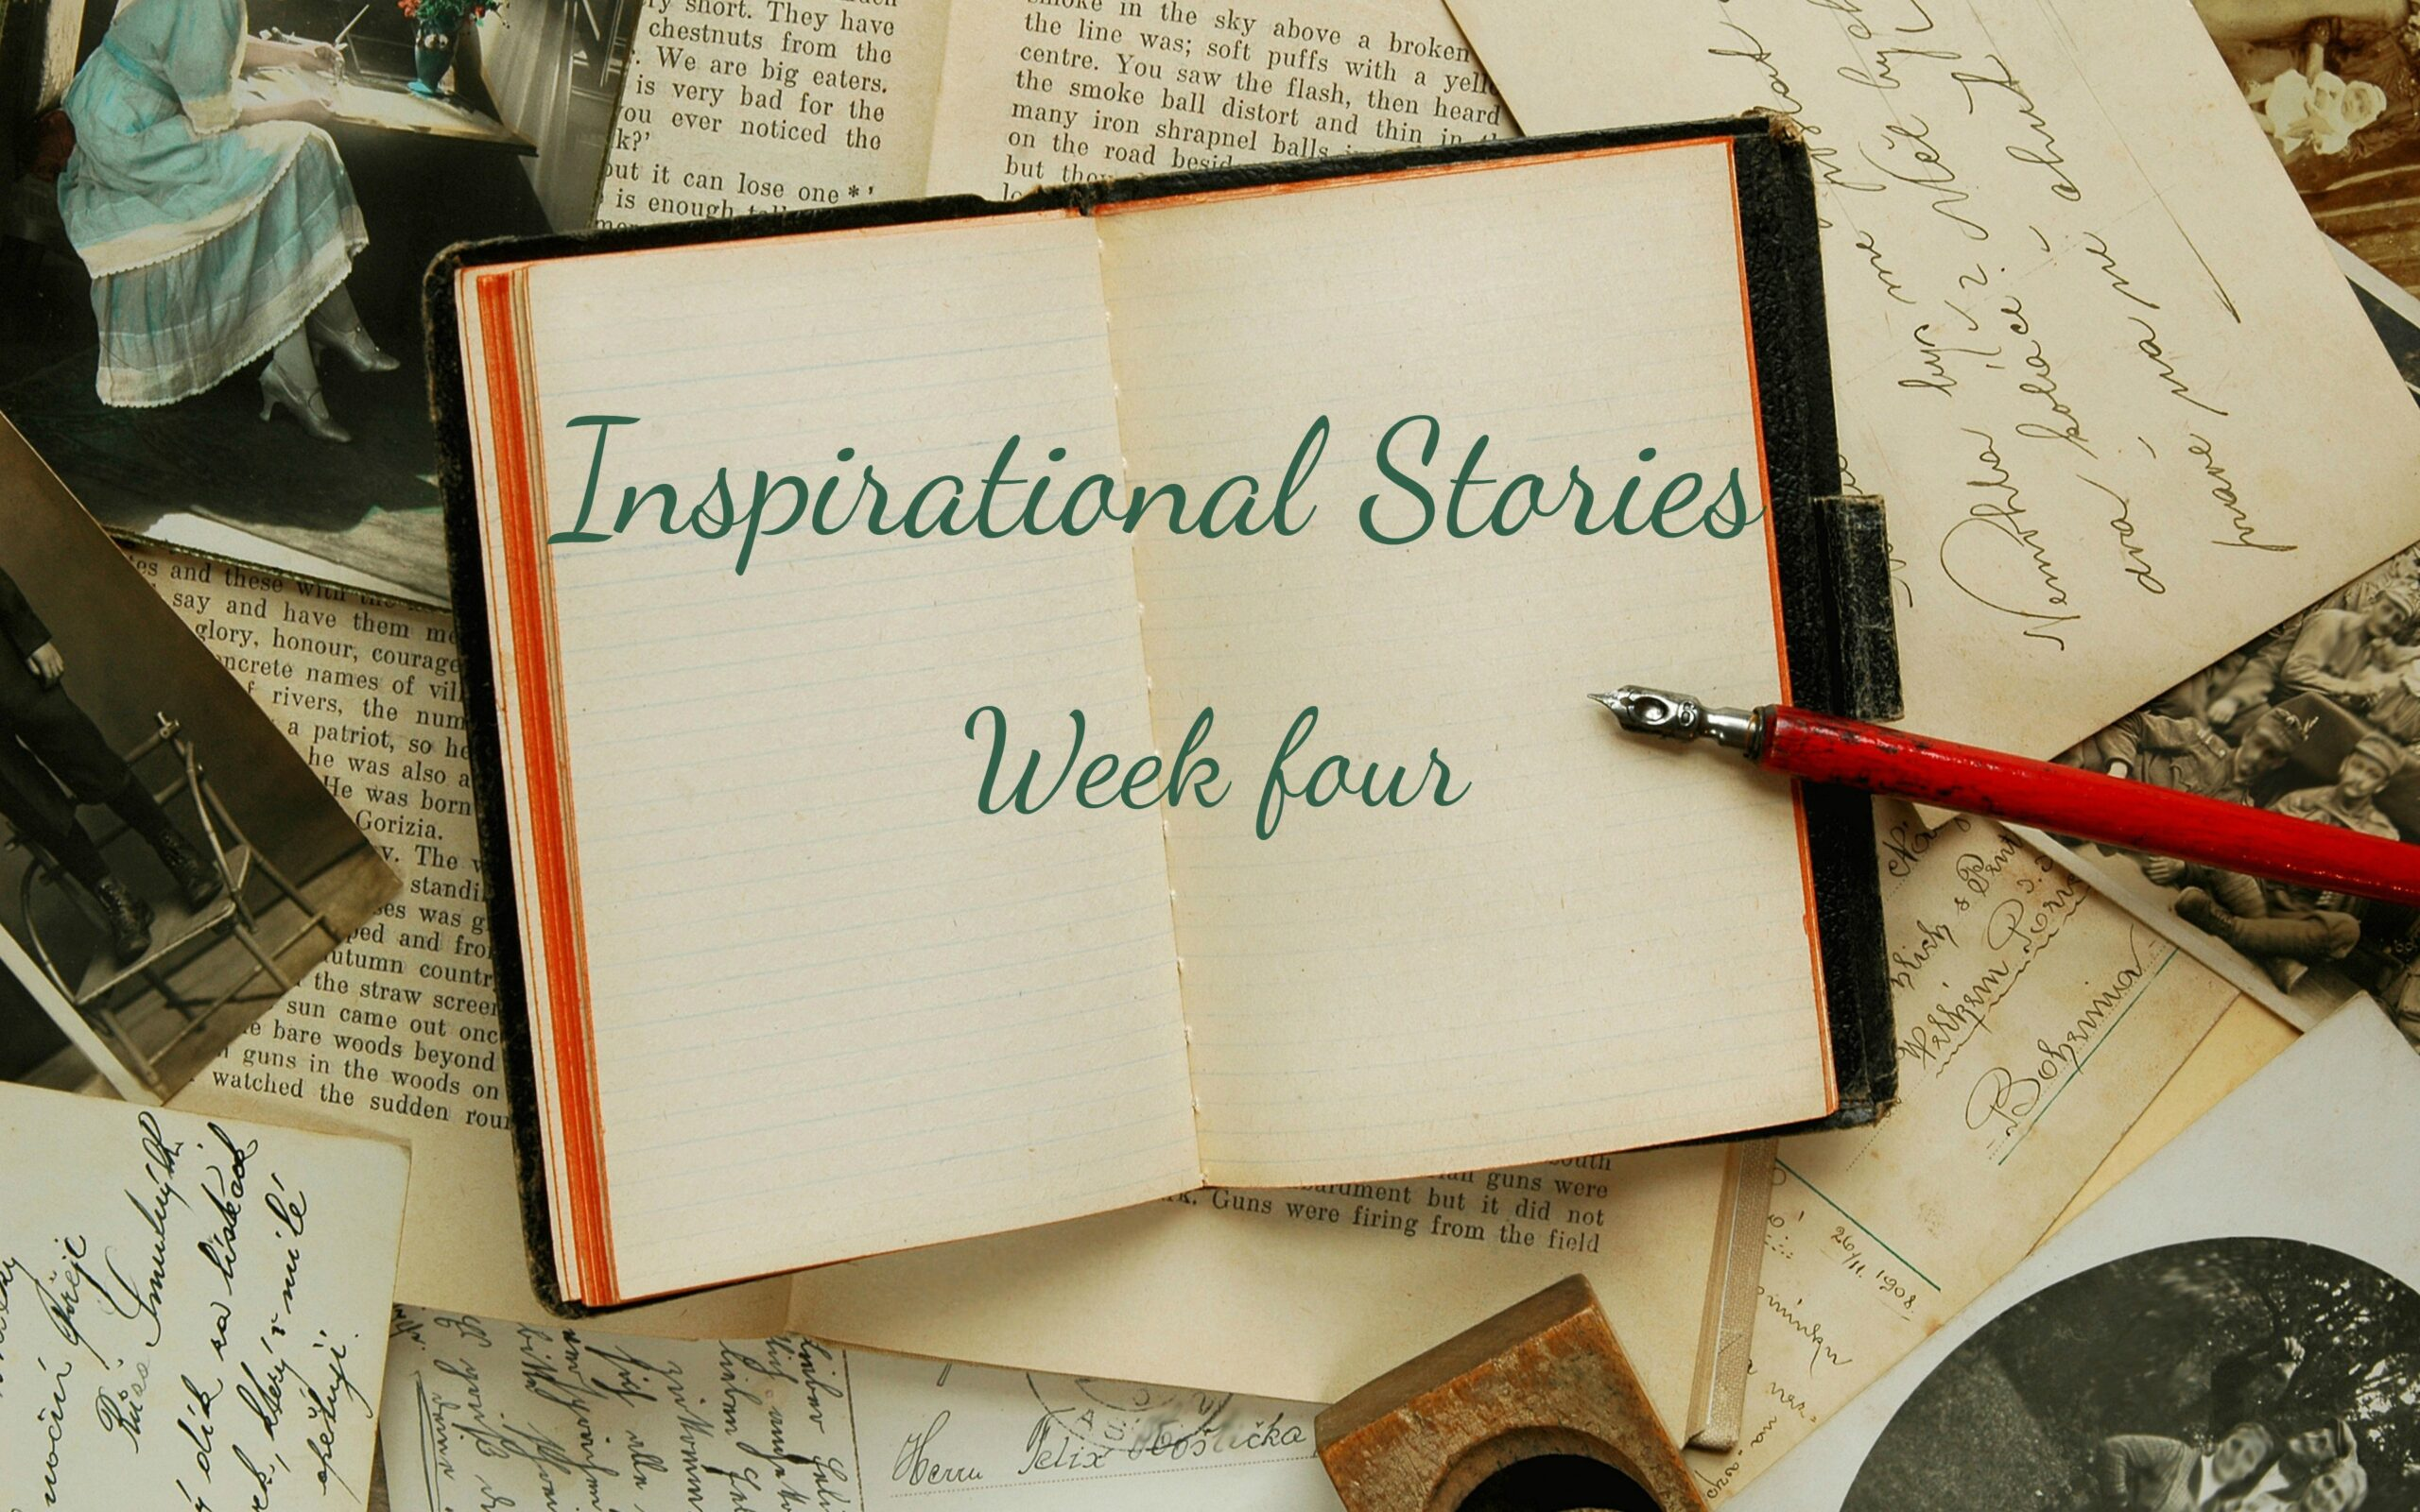 inspirational stories week four written across a book